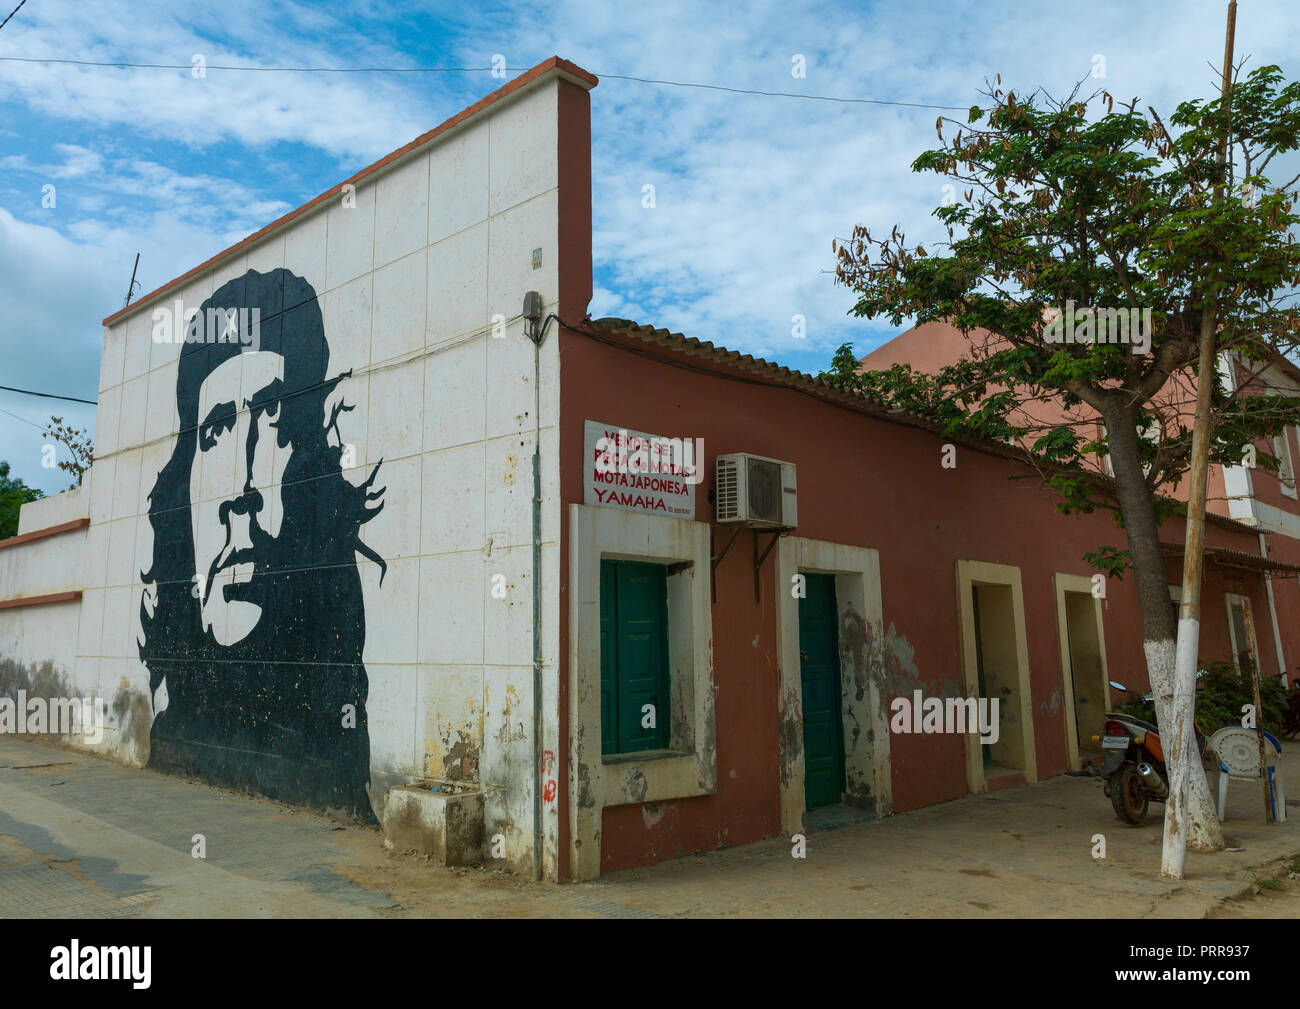 Wall painting of che guevara in the city, Luanda Province, Sumbe, Angola - Stock Image